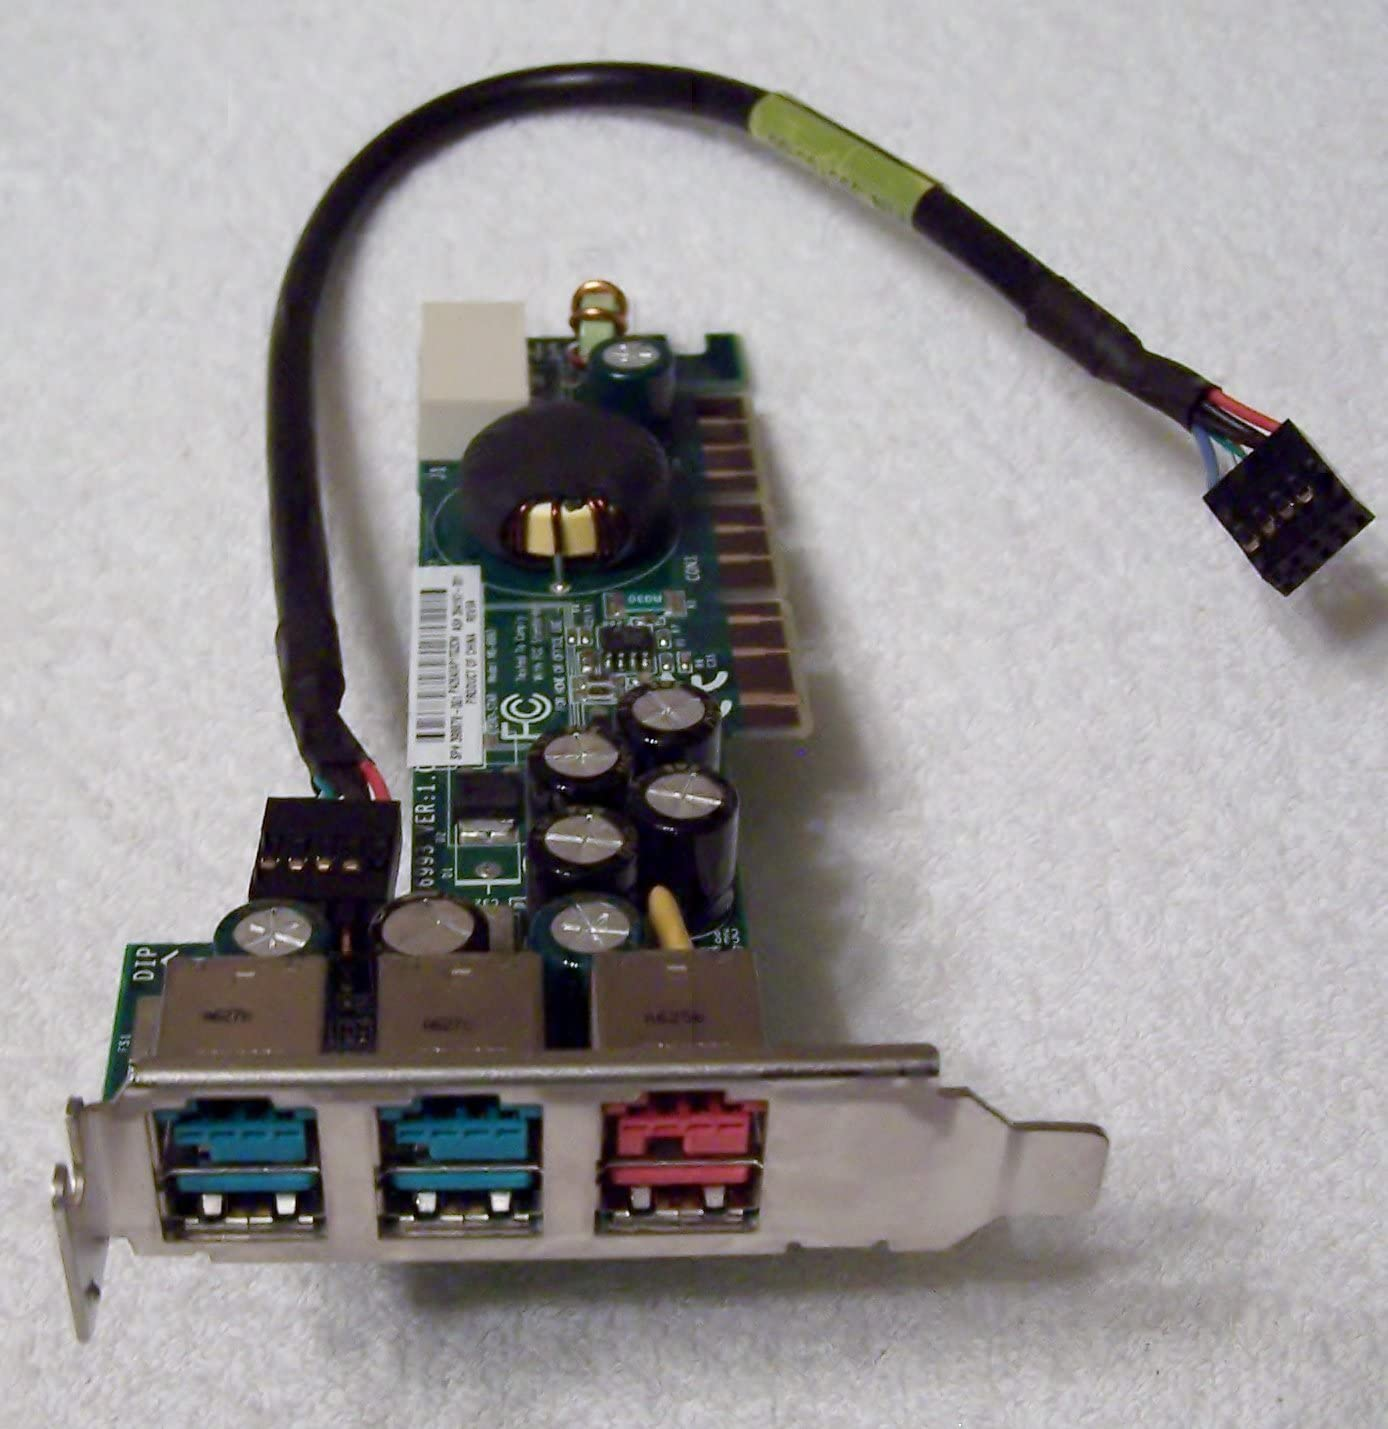 HP 398879-001 Powered USB PCI board - Has three powered USB connectors, two 12V and one 24V